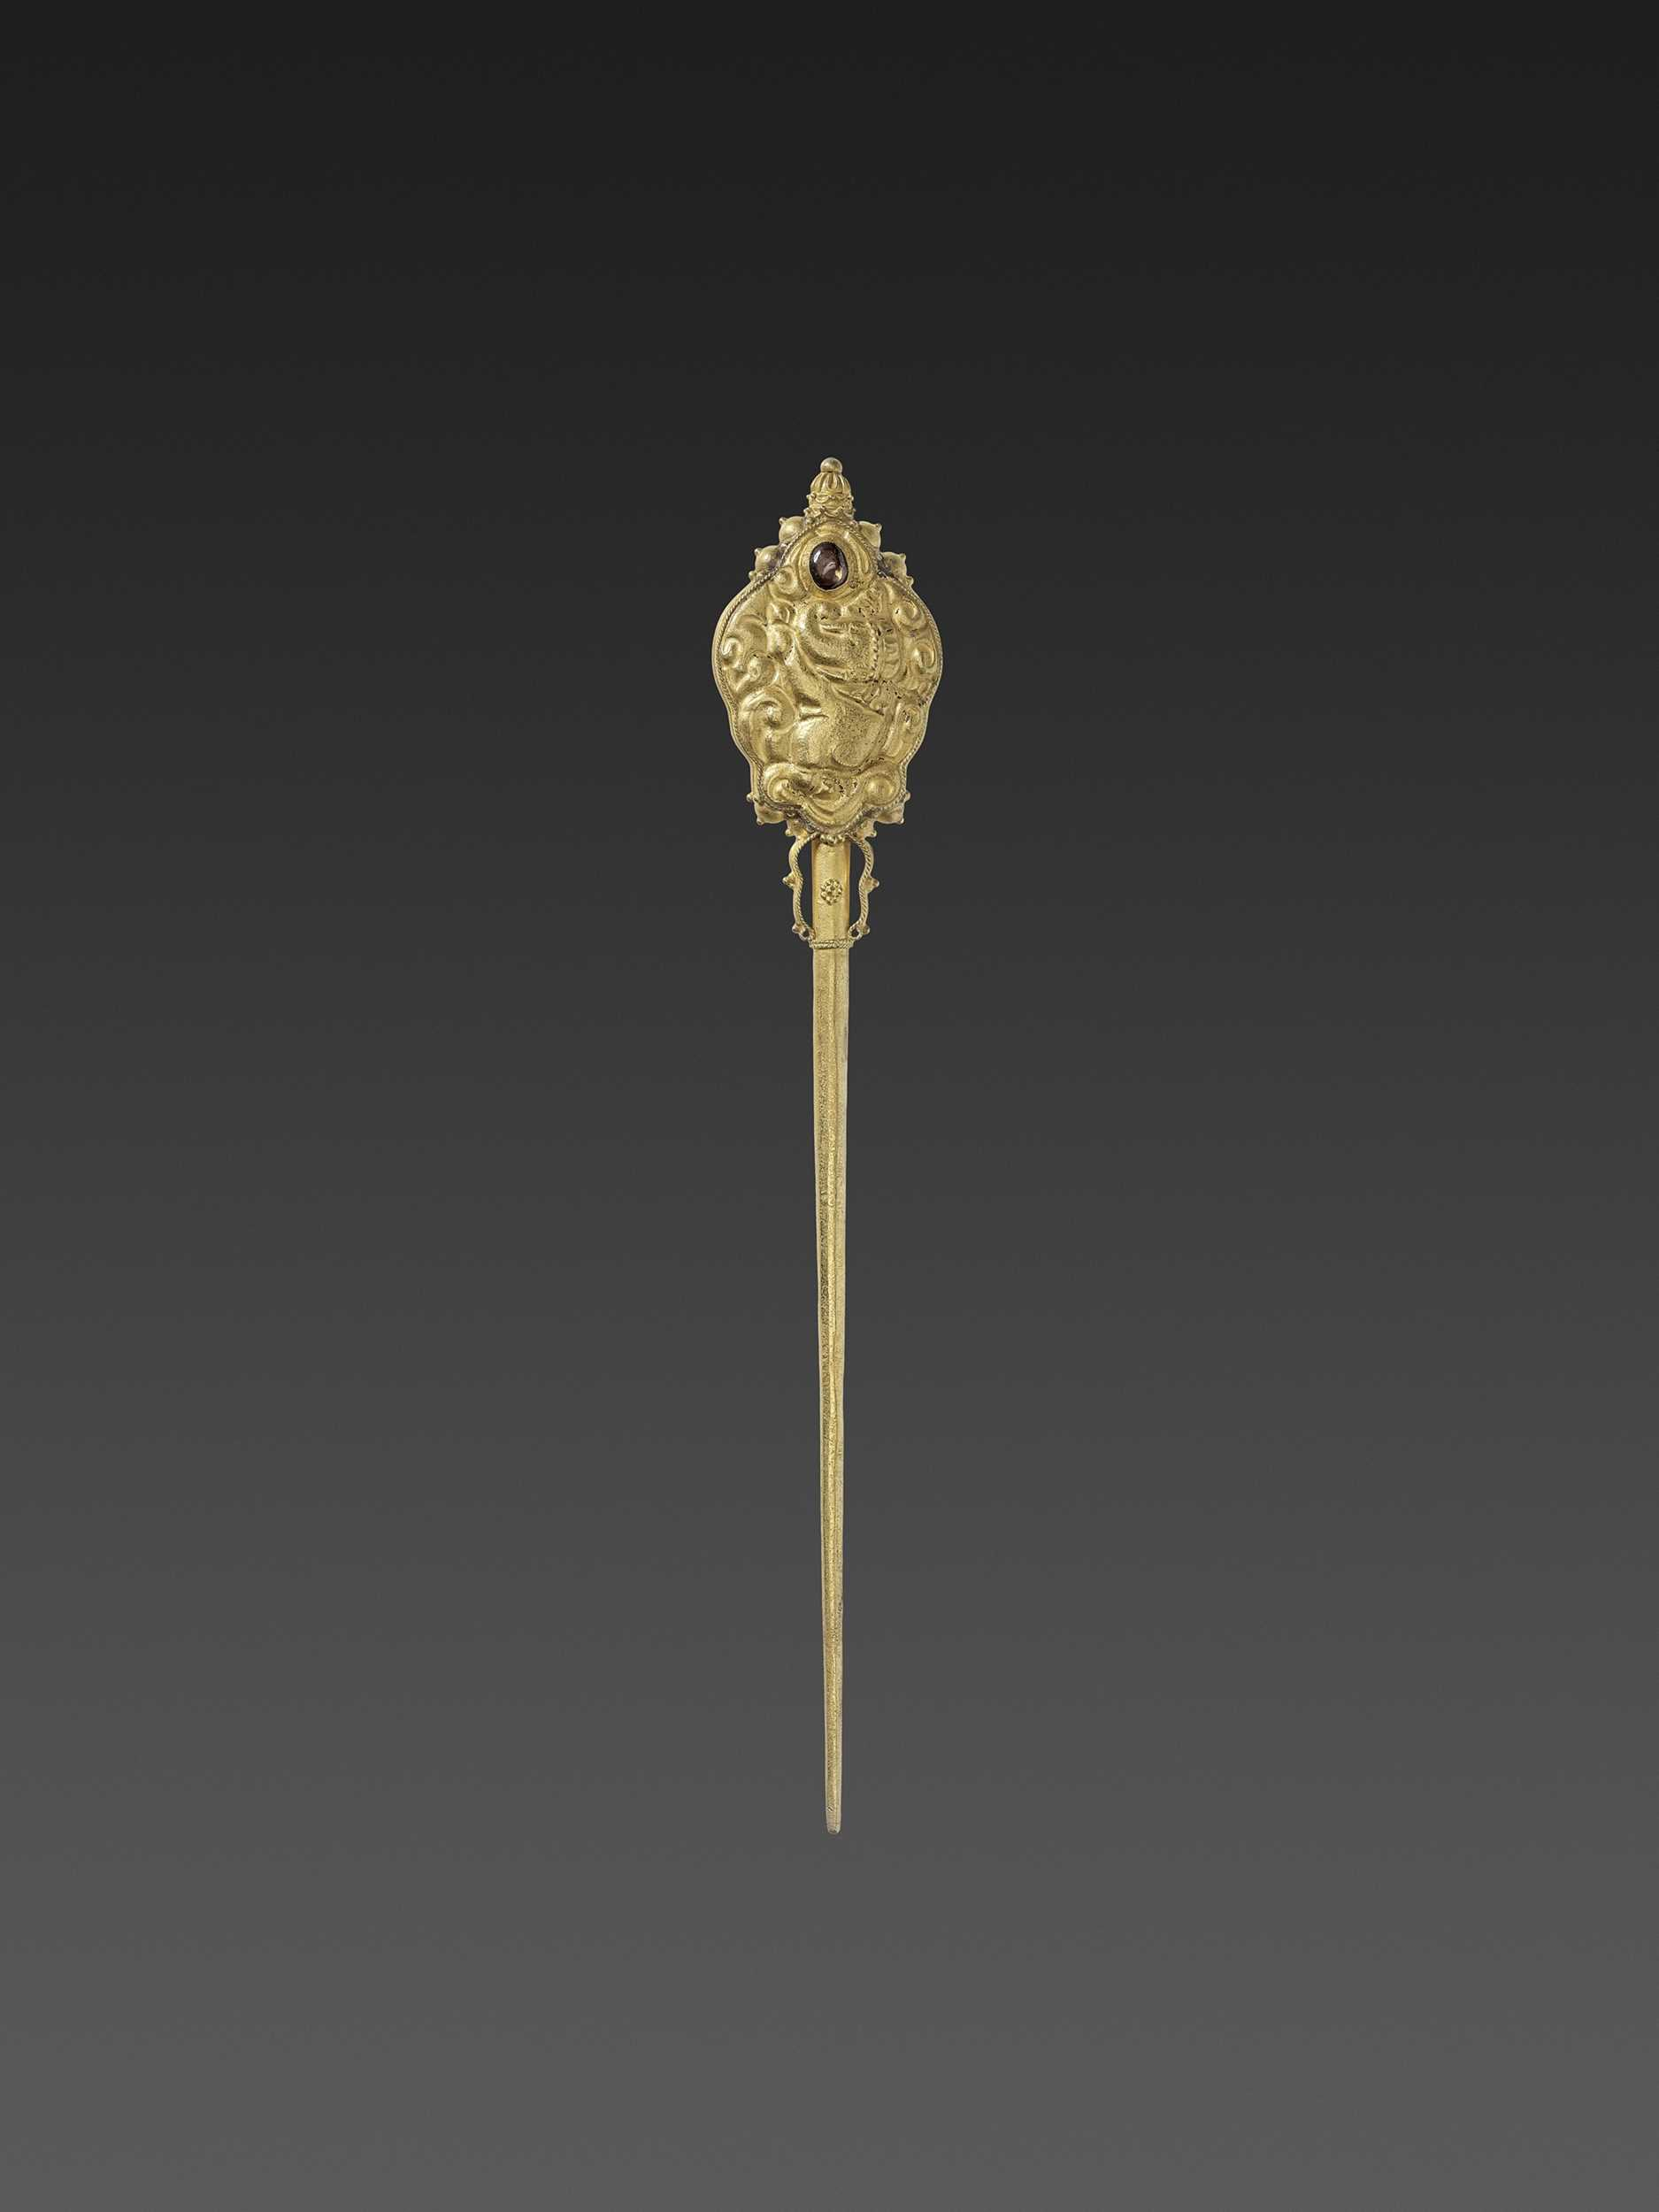 Lot 19-A CHAM GEMSTONE-SET GOLD REPOUSSÉ HAIRPIN WITH RECUMBENT ELEPHANTS